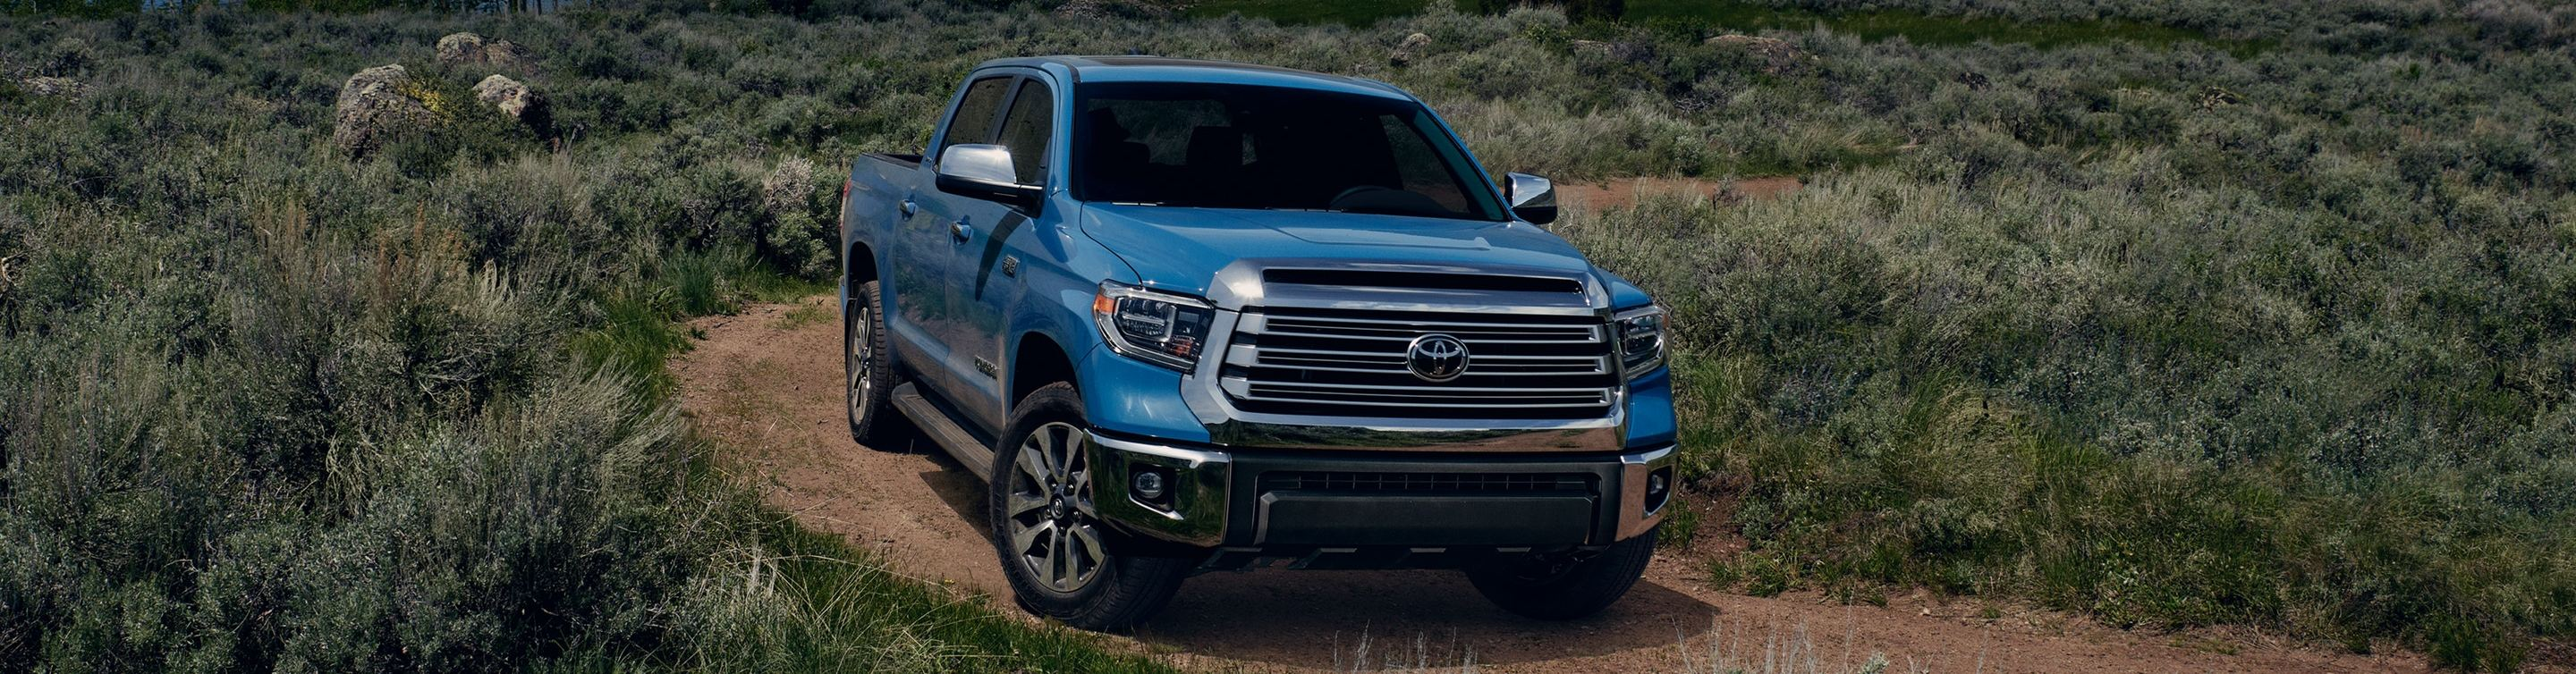 2020 Toyota Tundra for Sale in Tinley Park, IL